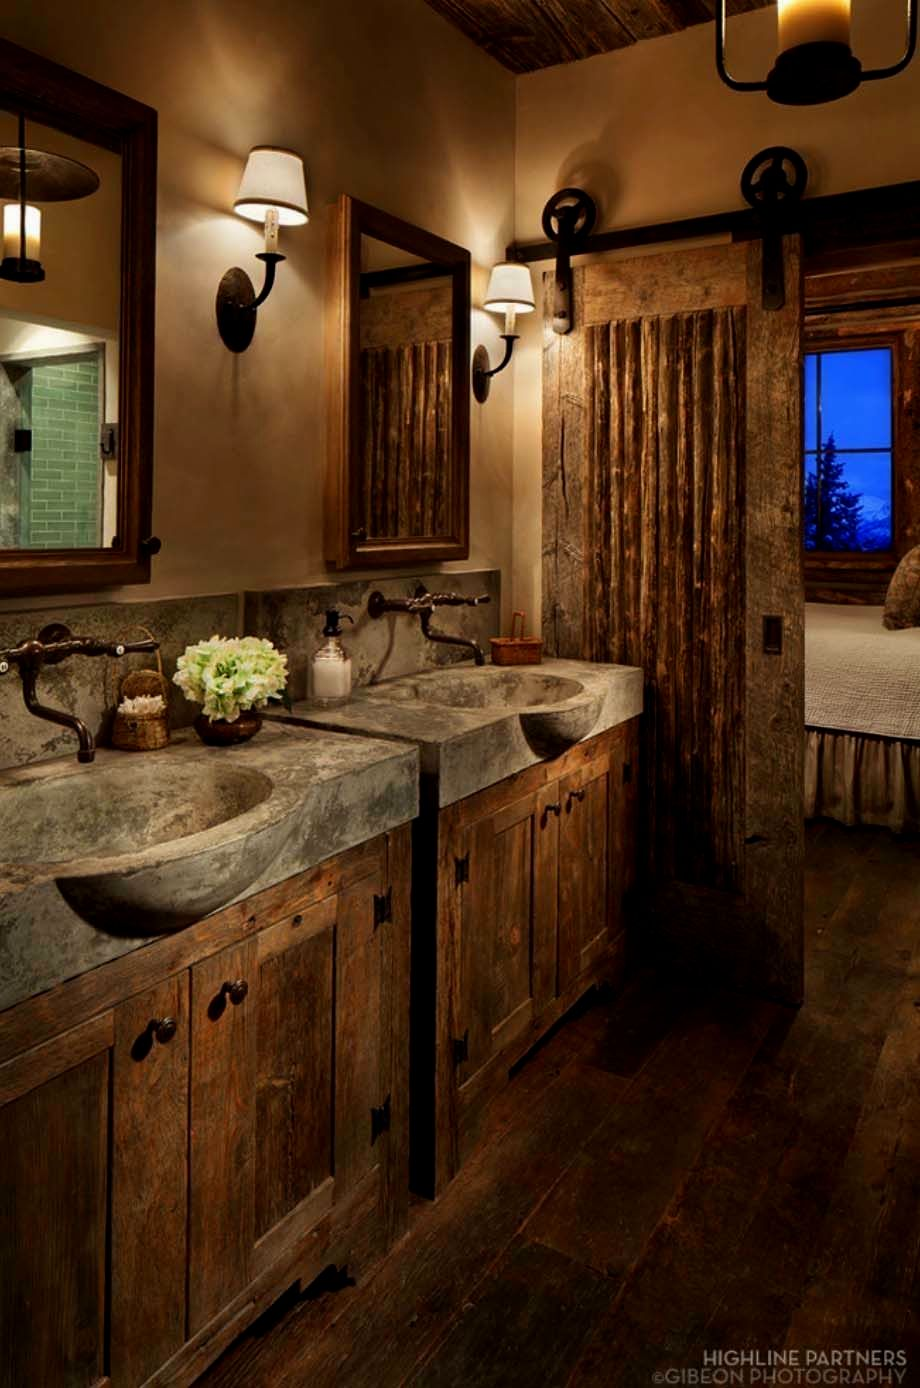 best double vanity bathroom ideas-Top Double Vanity Bathroom Portrait